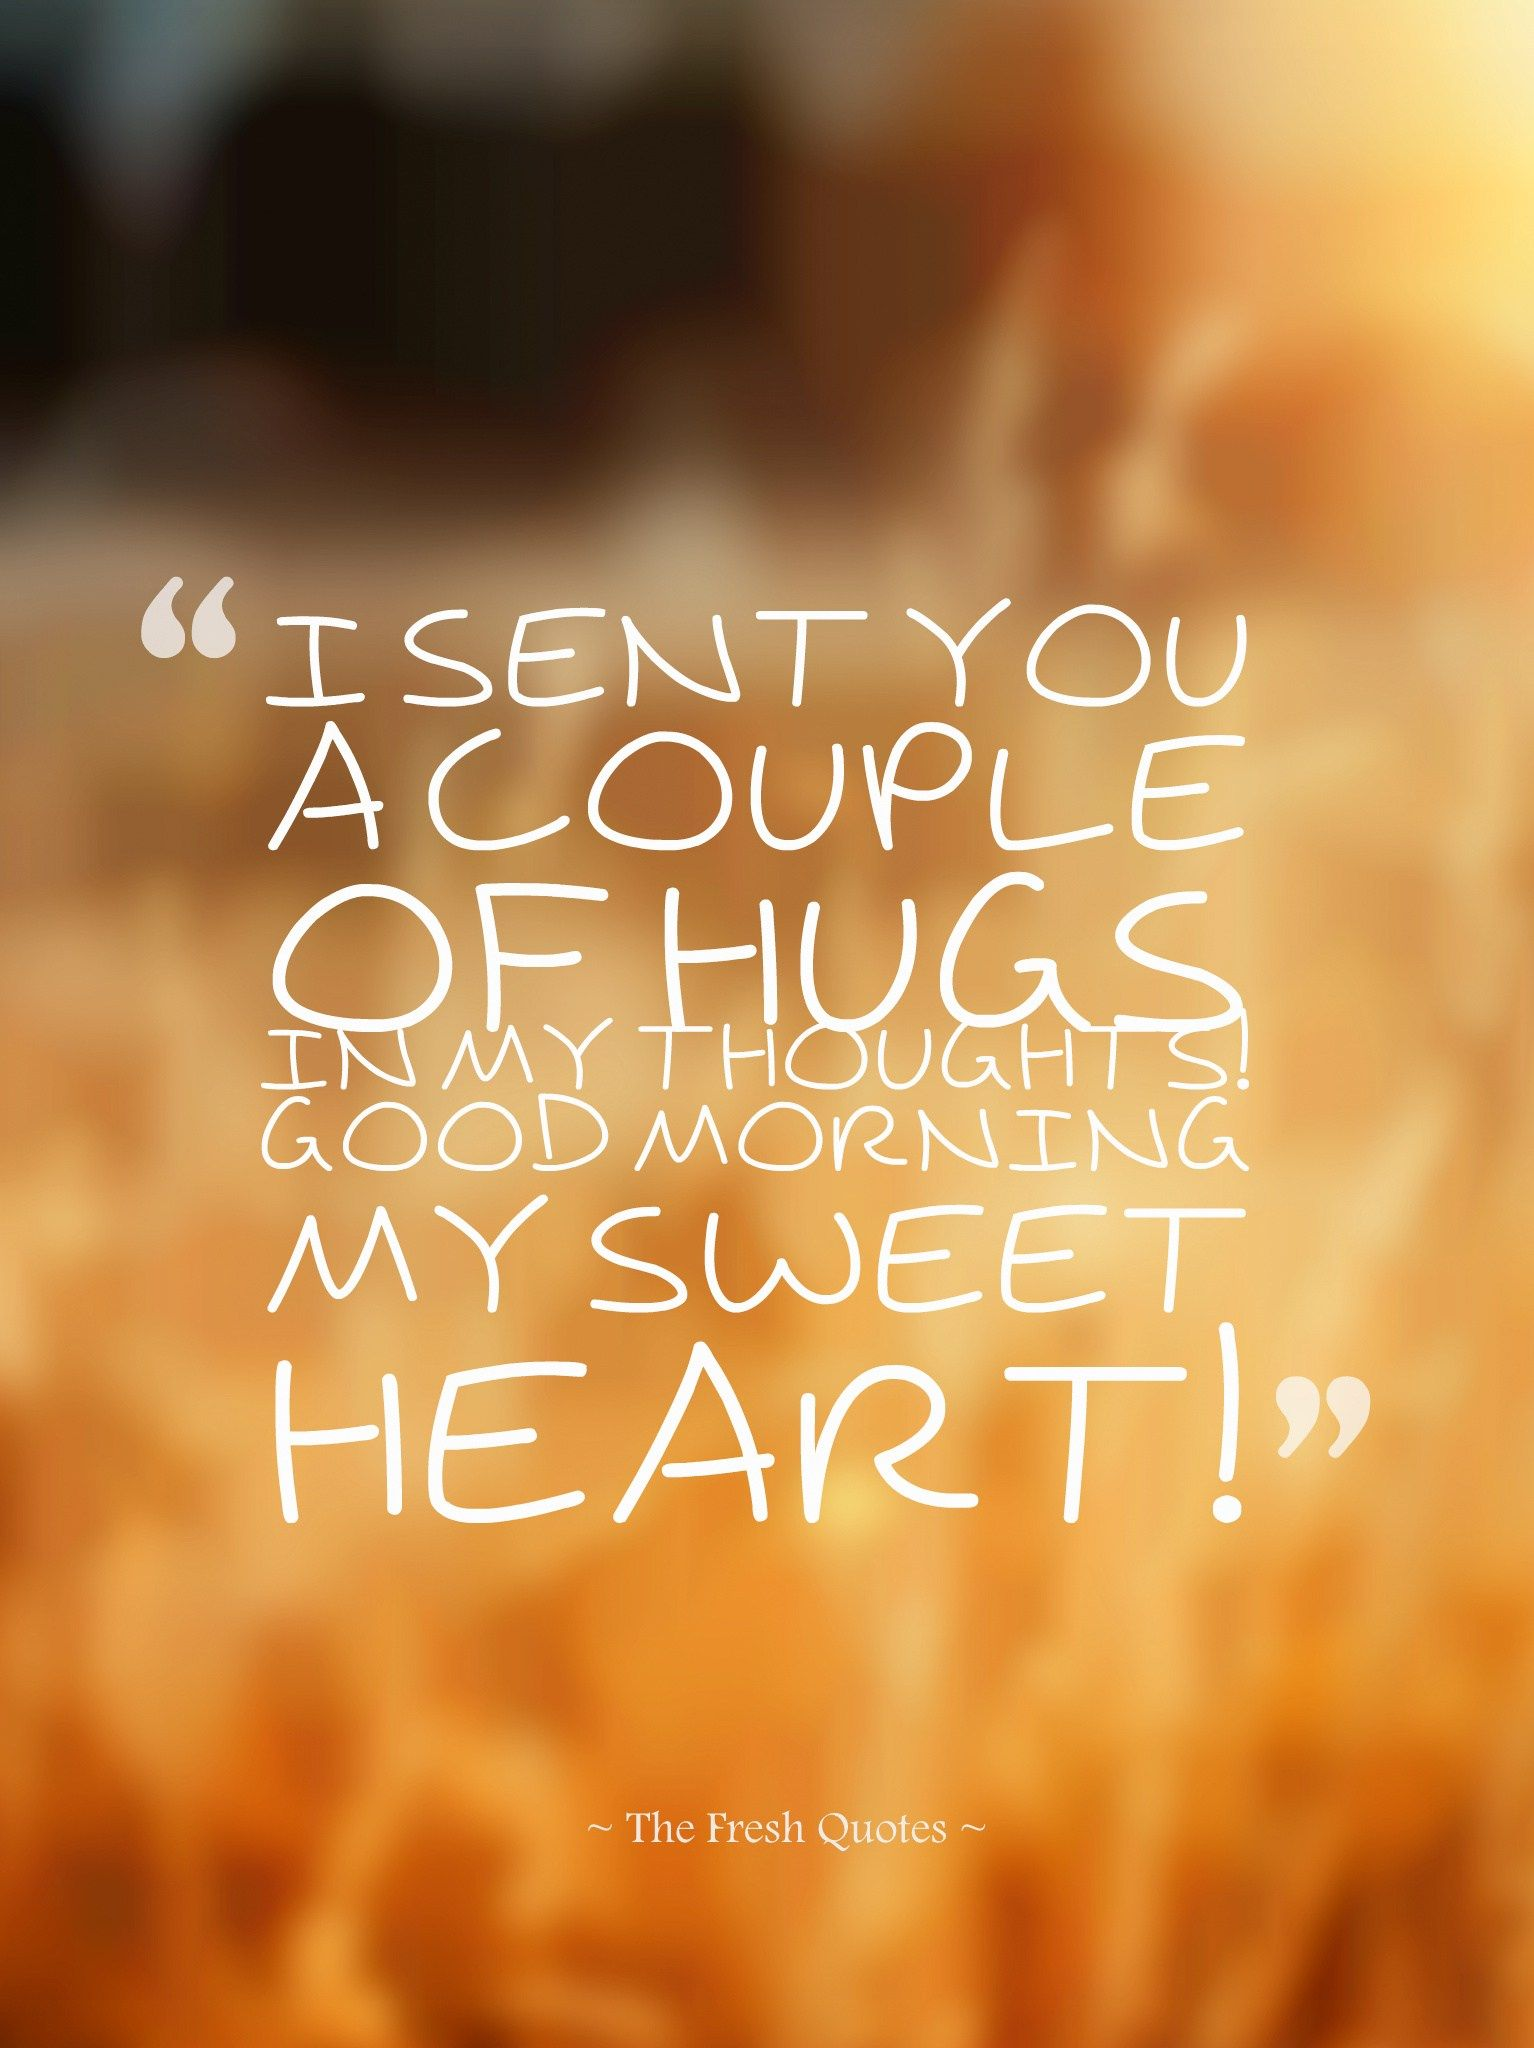 Cute Romantic Good Morning Wishes Images Love Morning Quotes